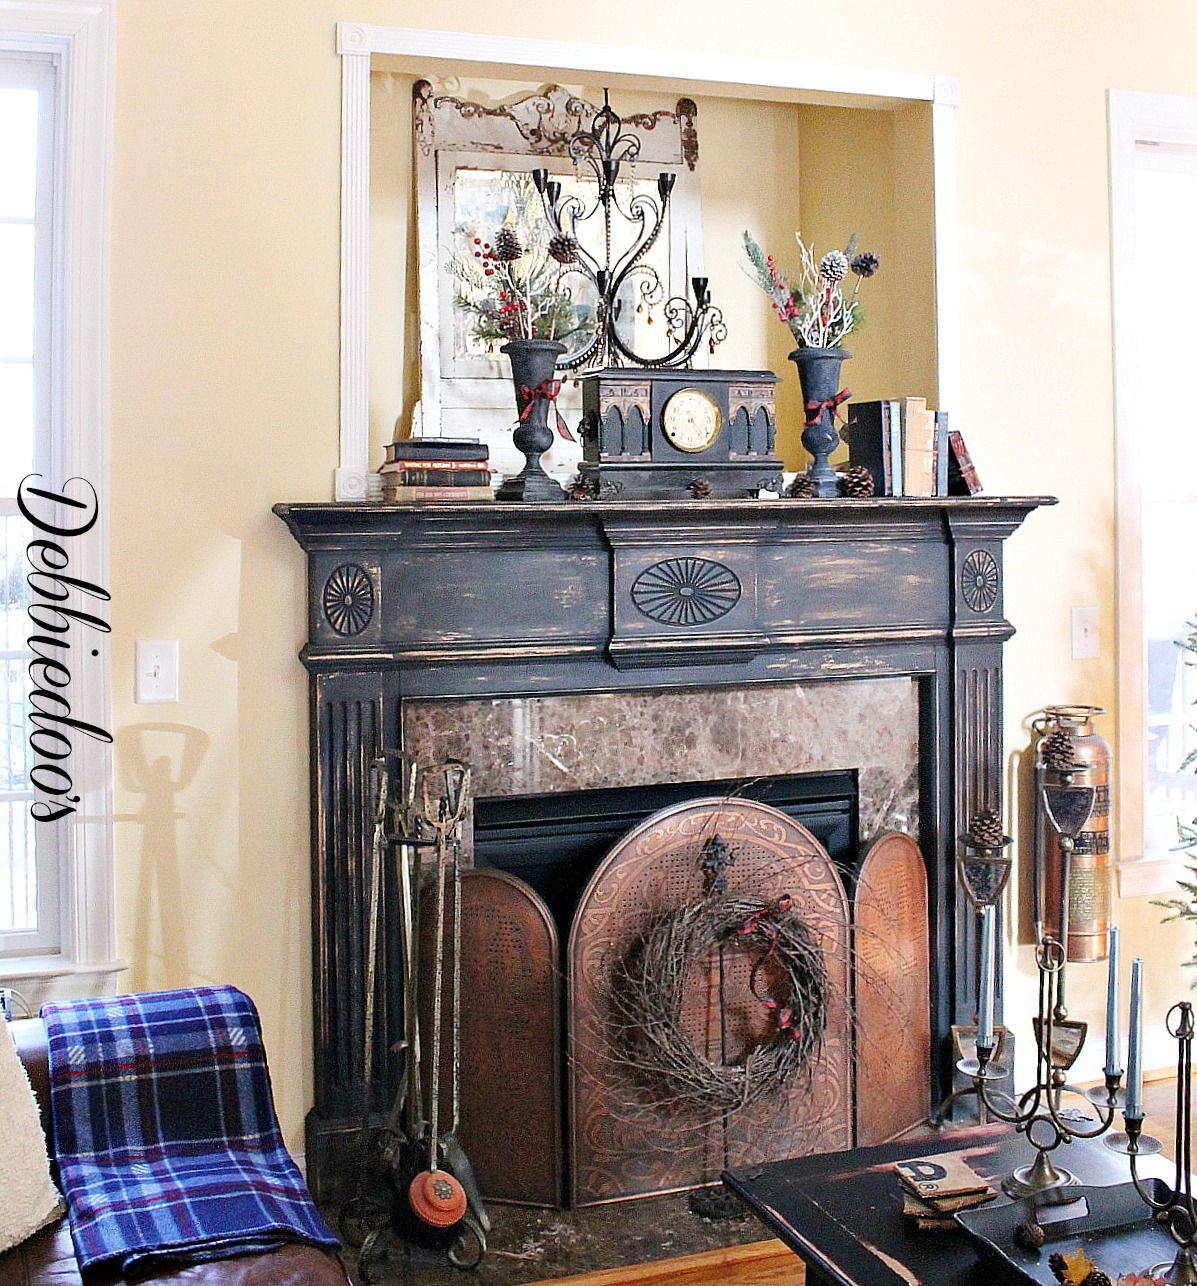 Painting the fireplace surround - Debbiedoo's